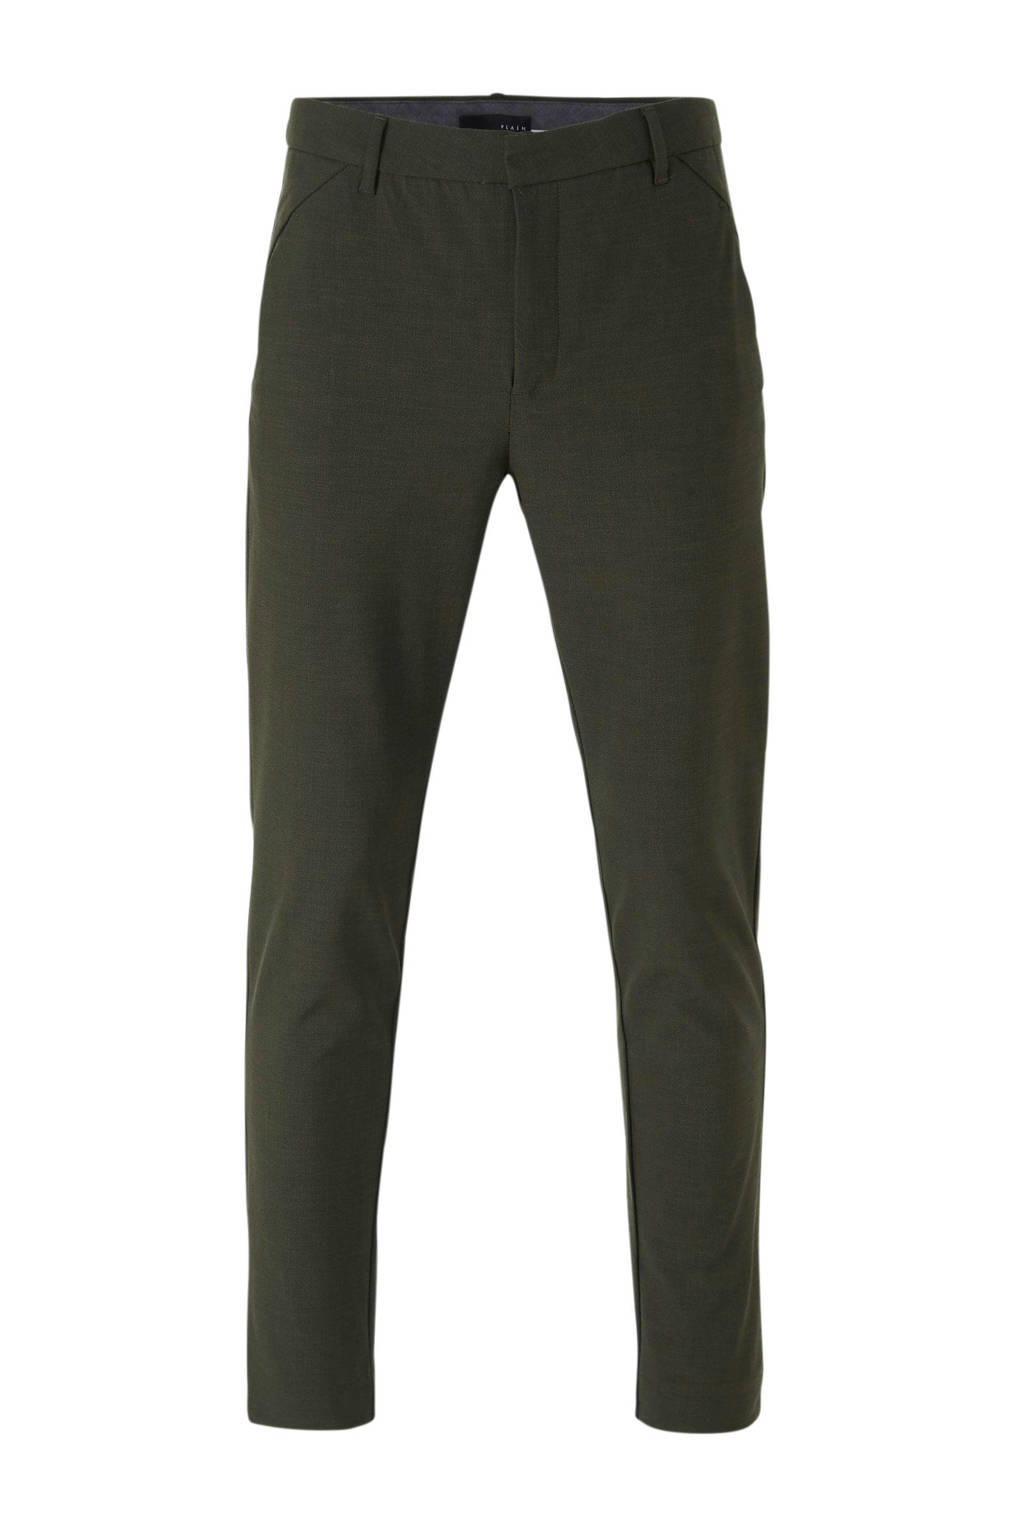 PLAIN slim fit pantalon groen, Groen